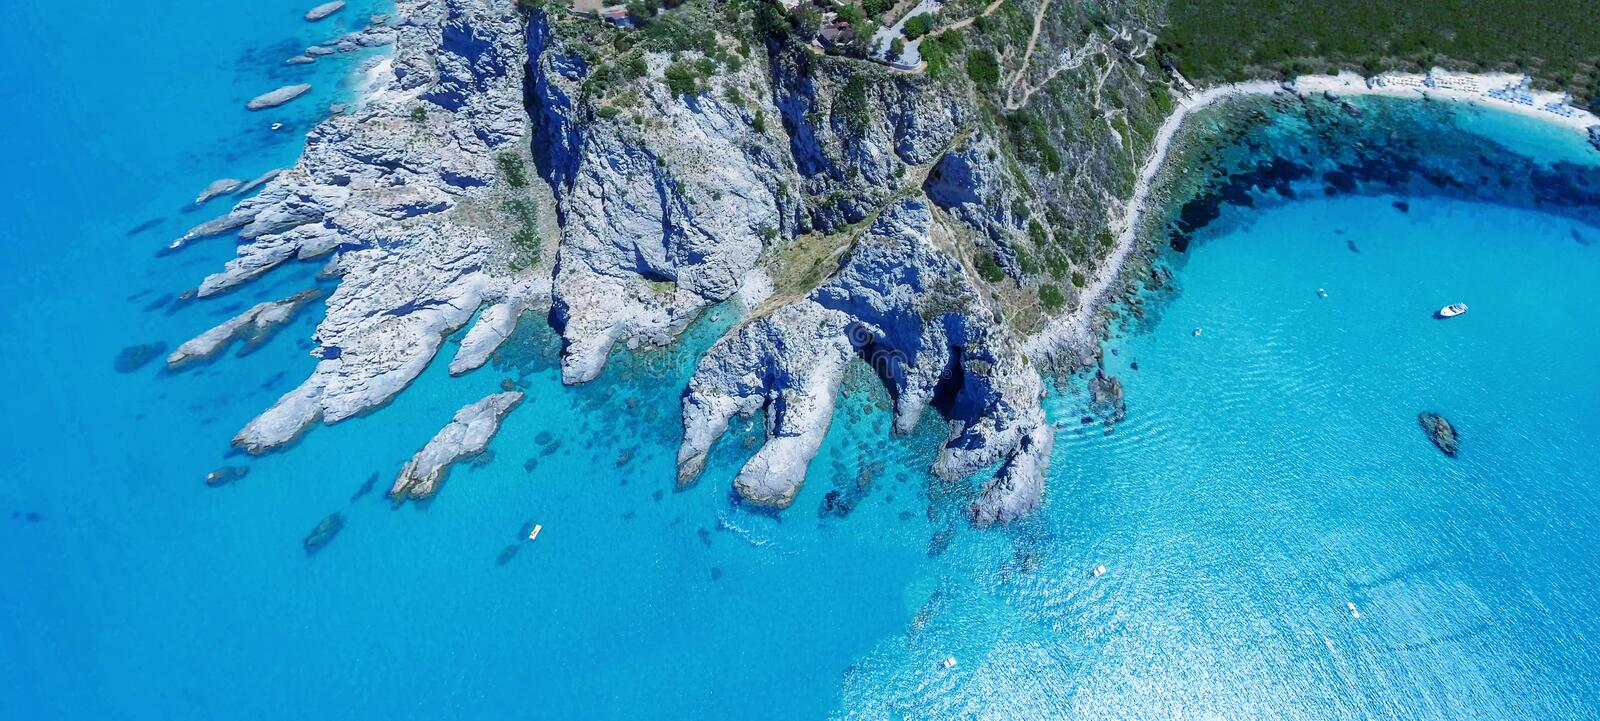 Capo Vaticano, Calabria - Italy. Amazing panoramic overhead aerial view of coastline on a sunny day.  stock photos